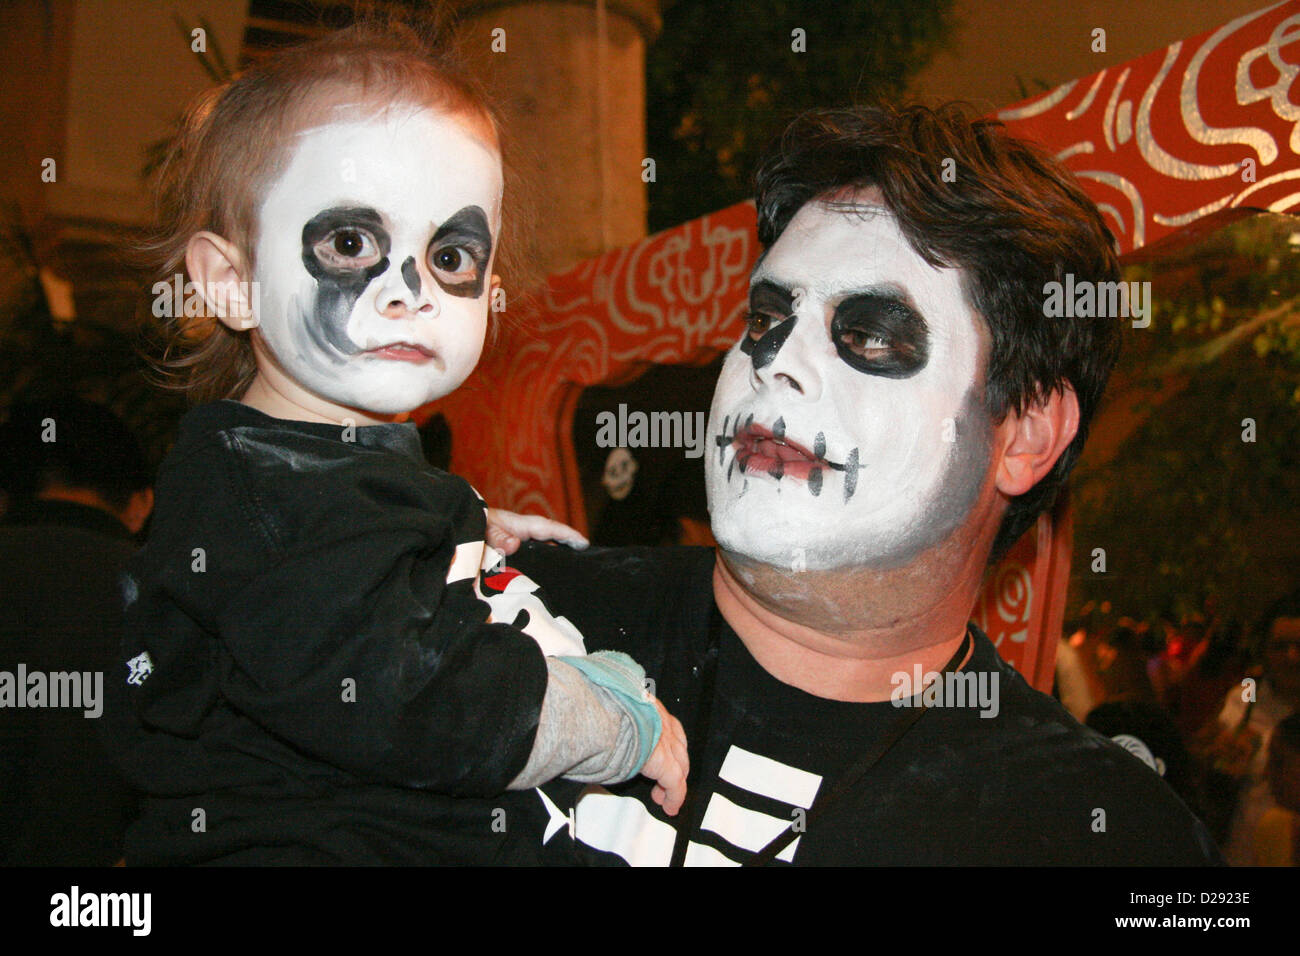 Painted Participants At Day Of The Dead Festivities At Xcaret Near Playa Del Carmen. Mexico - Stock Image